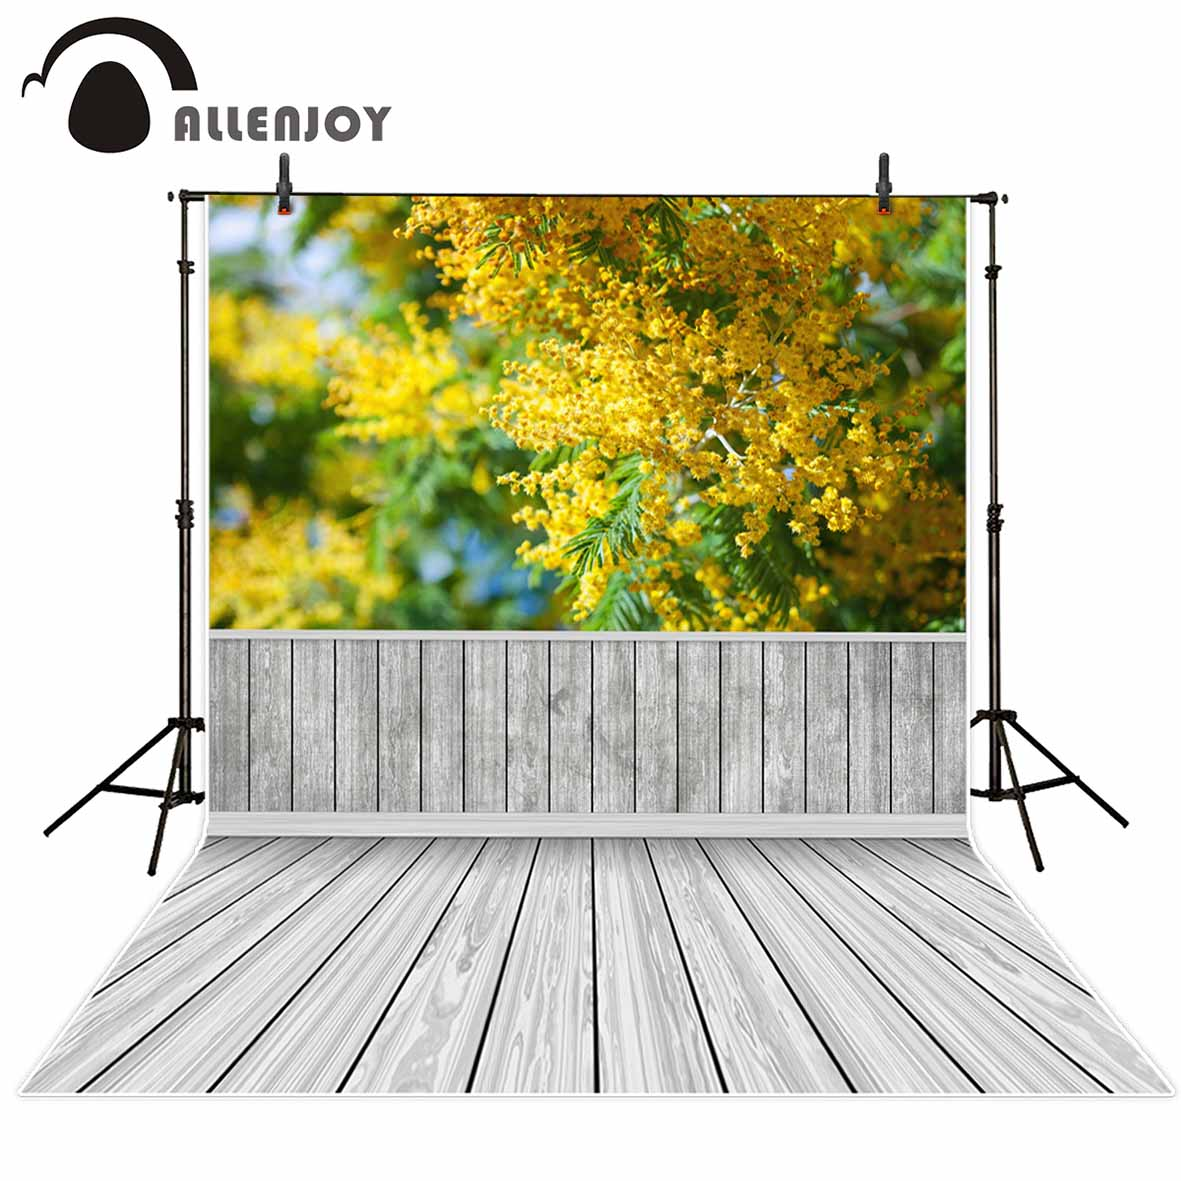 Allenjoy Yellow flowers wood floor spring background for children photo booth backdrop vinyl backdrops for photography allenjoy photography backdrops love white wood board floor red hearts branches valentine s day wedding photo booth profissional